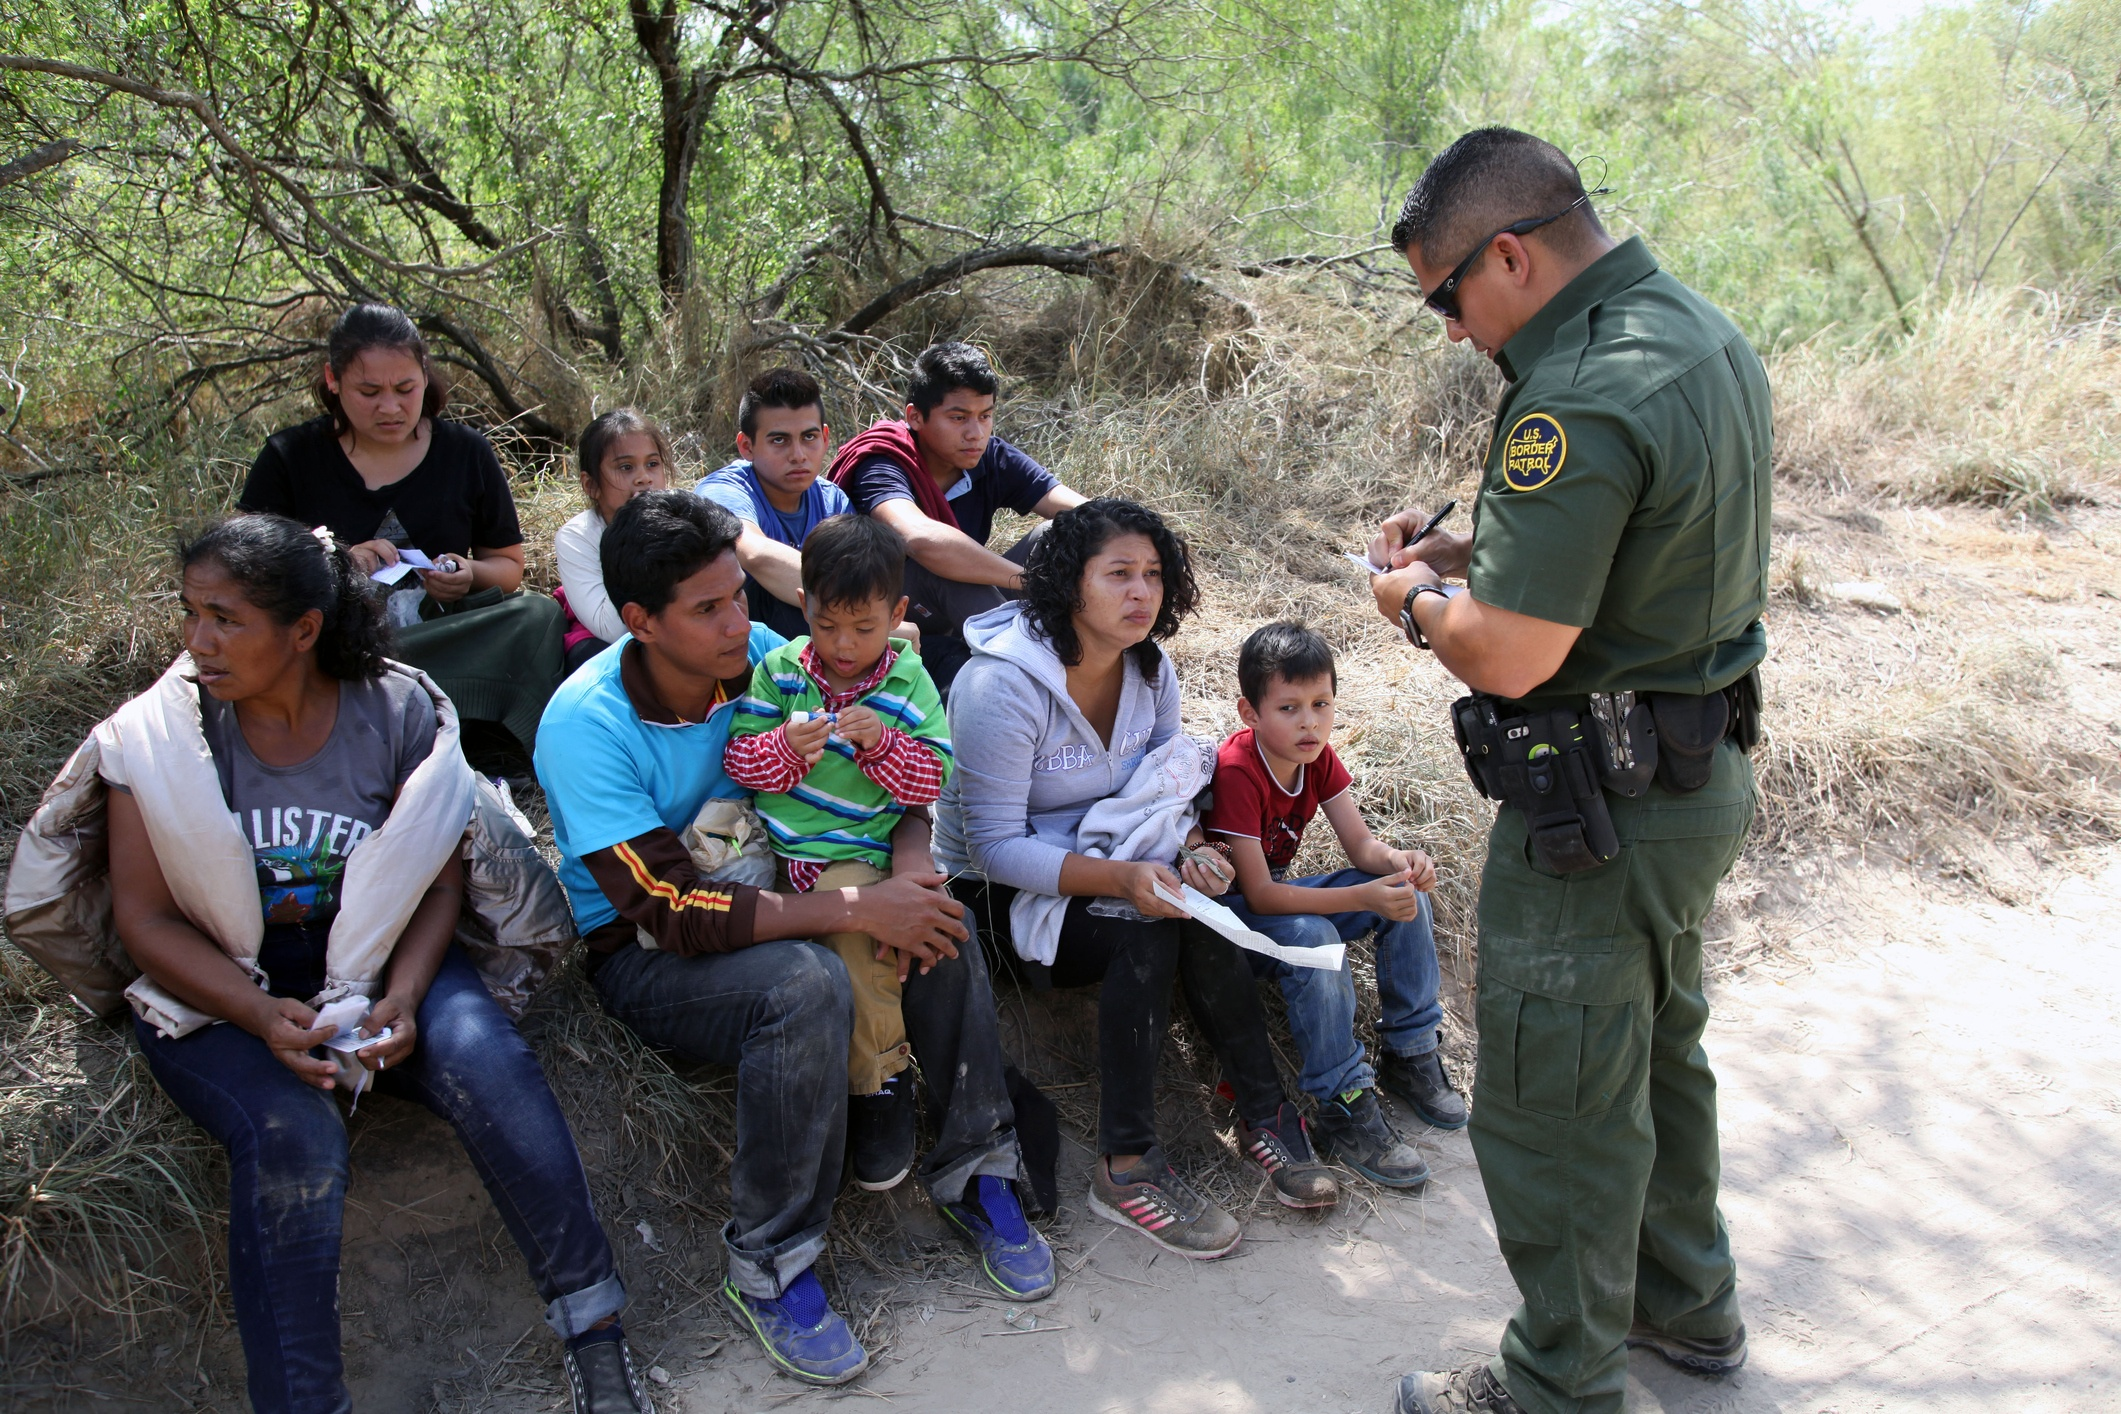 Border Rule 'Establishes Very High Standards of Care for Children in Federal Custody'